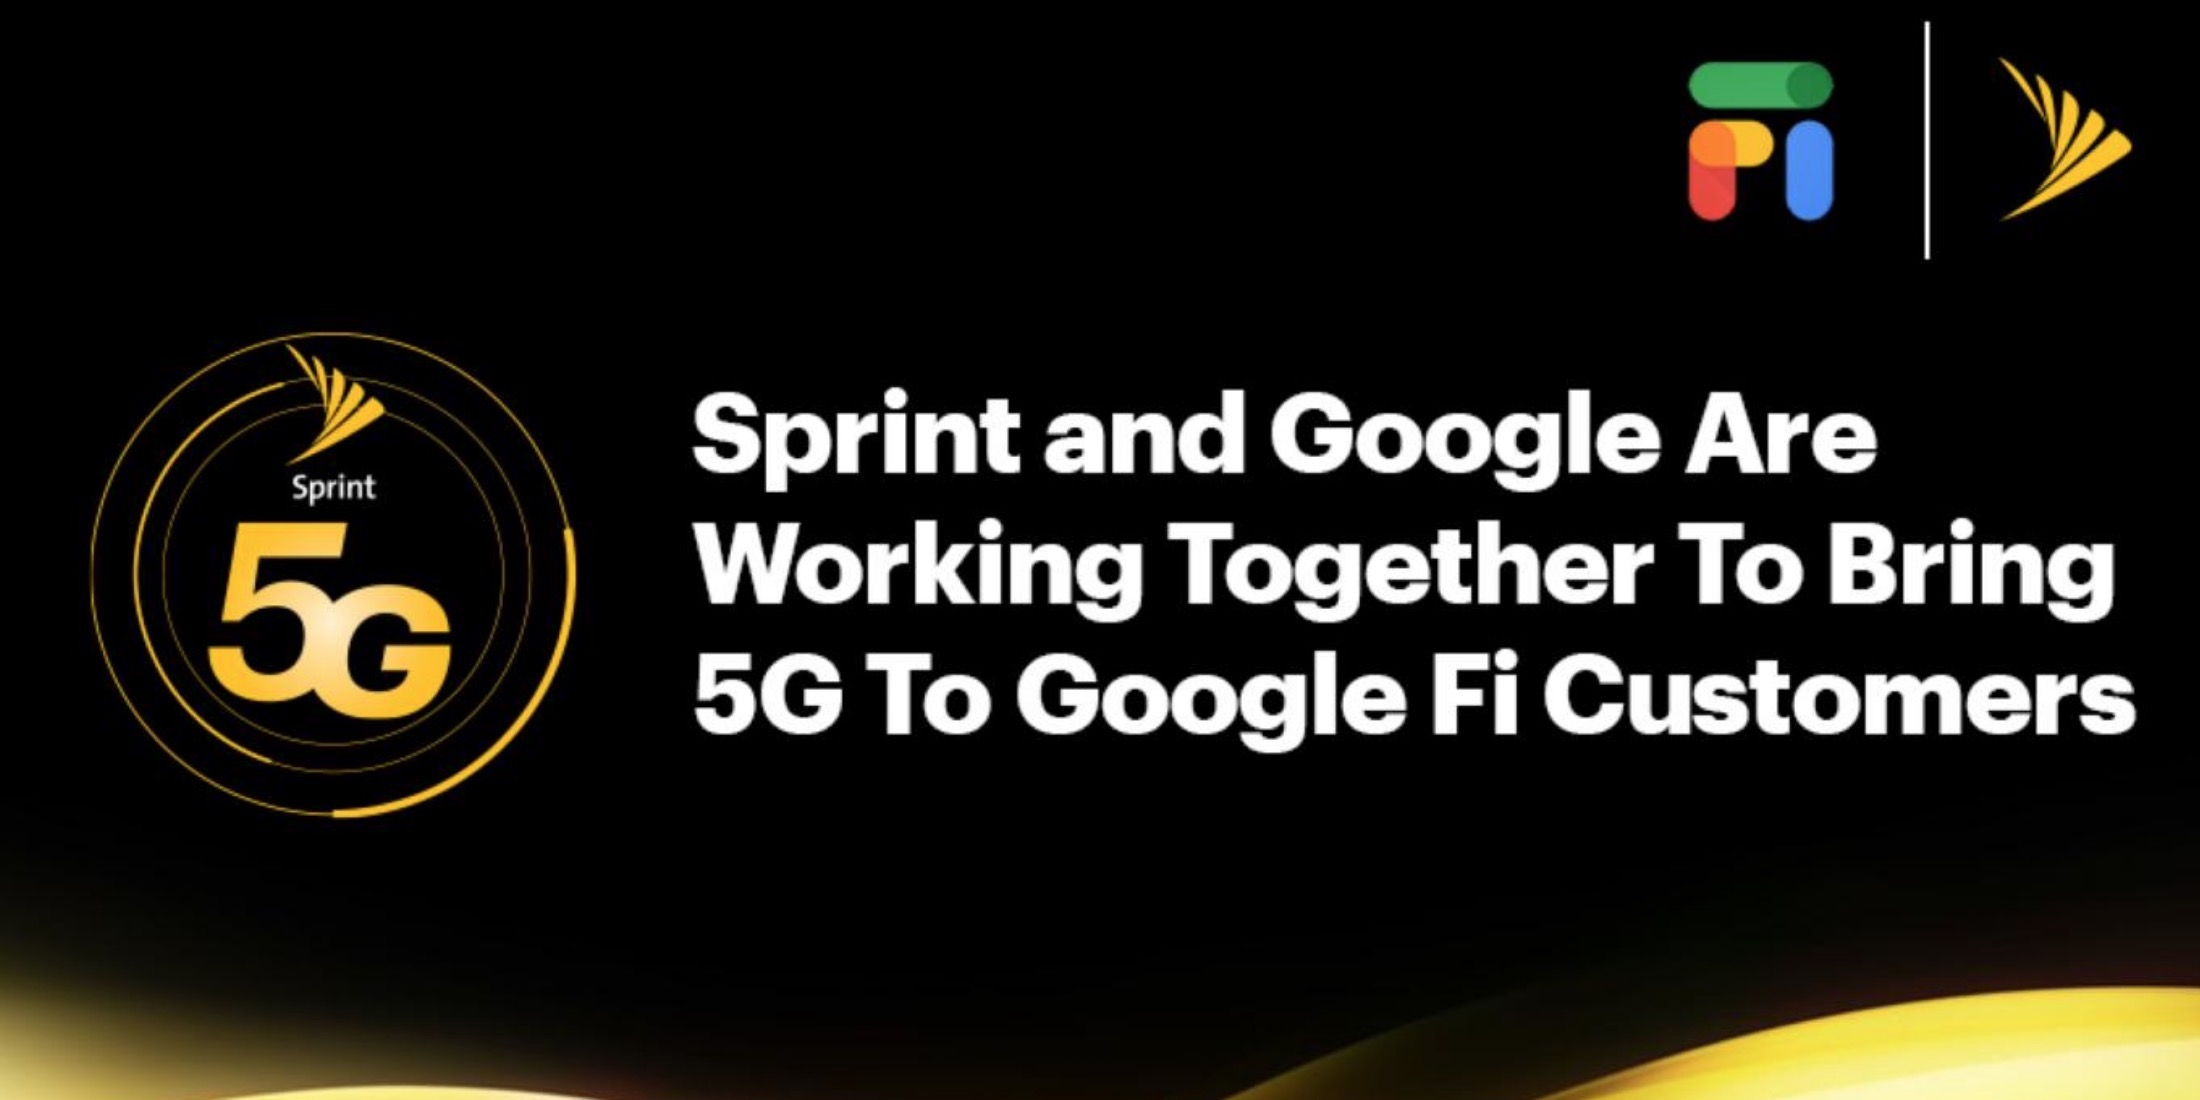 Google Fi expands MVNO deal with Sprint to offer 5G - 9to5Google